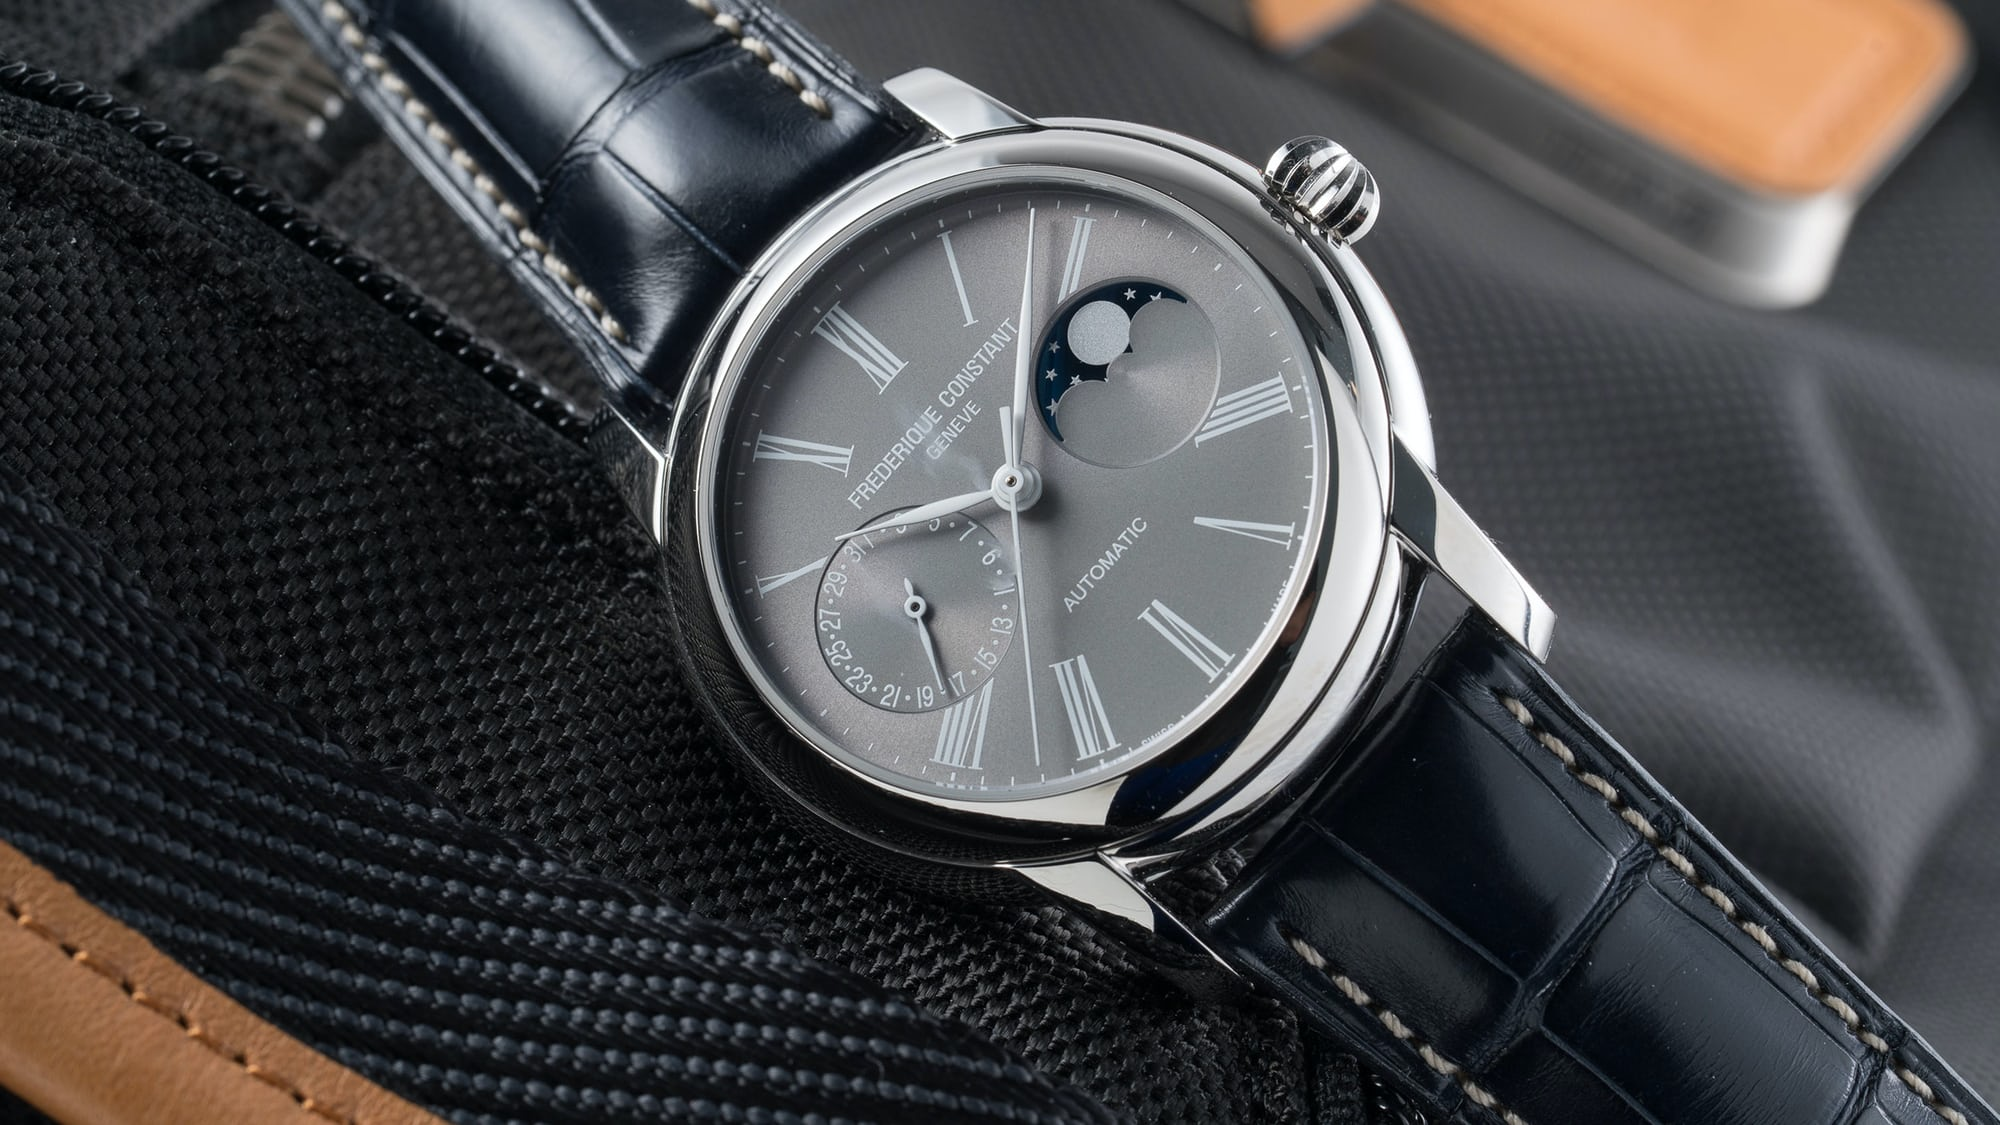 Introducing: The Frederique Constant Classic Moonphase Manufacture